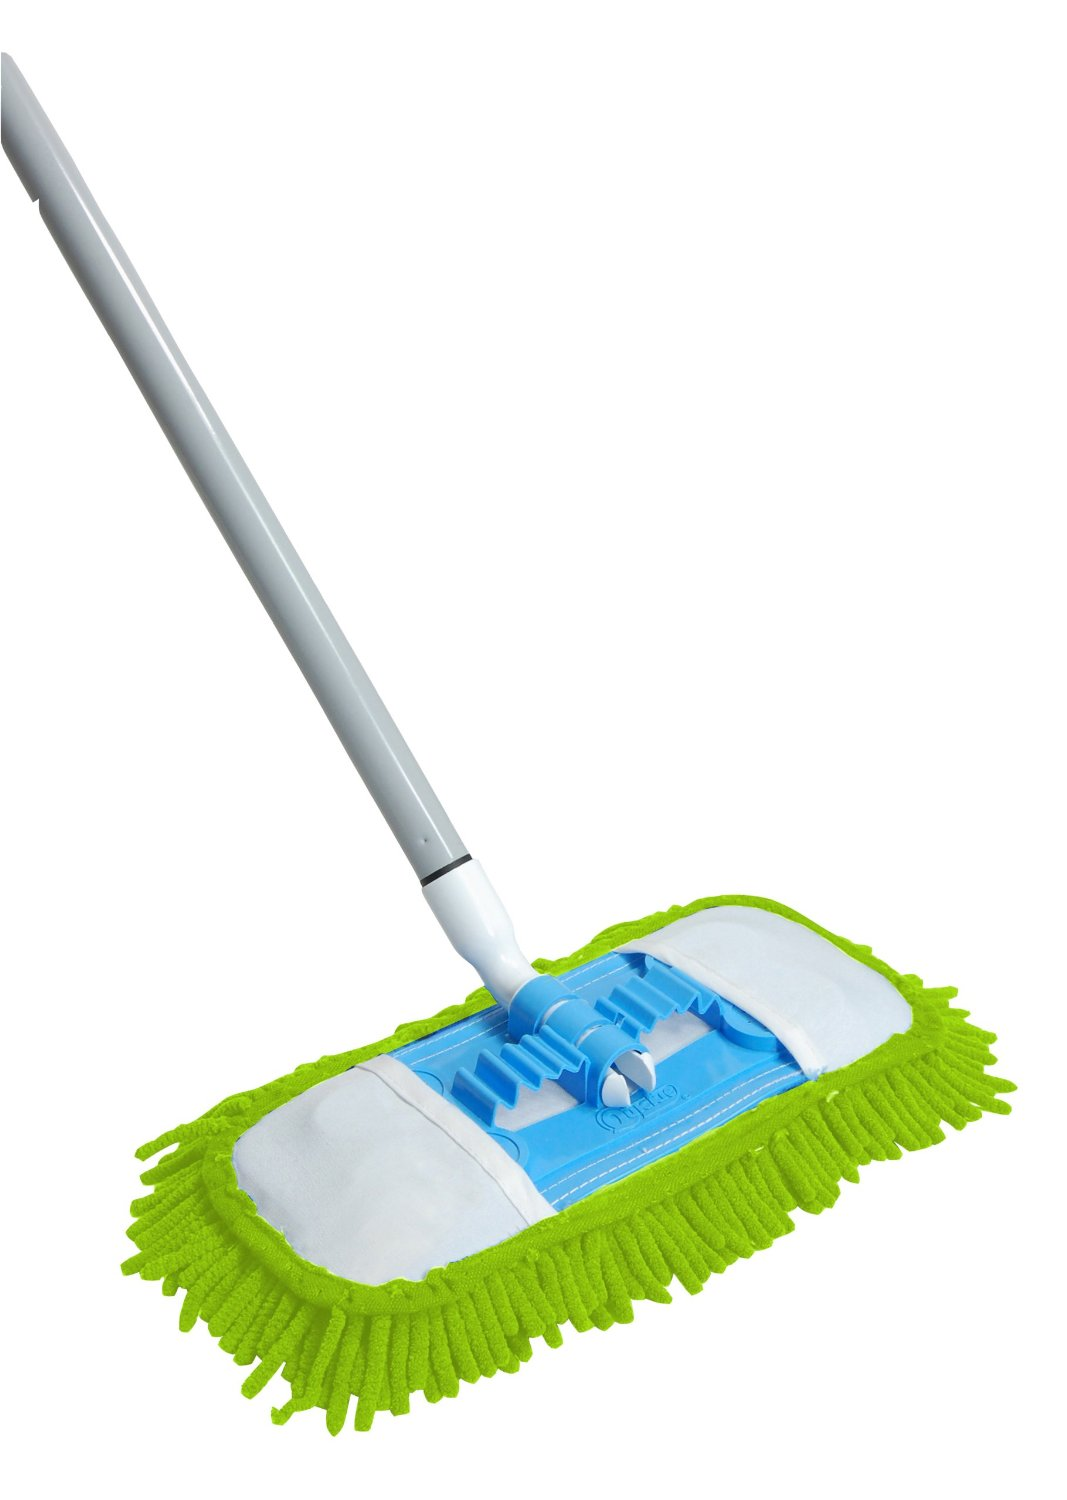 Dust mop for wood floors - Unique Modern Green Dust Mop For Wood Floor Design With Blue Accent And Bold Chrome Stick